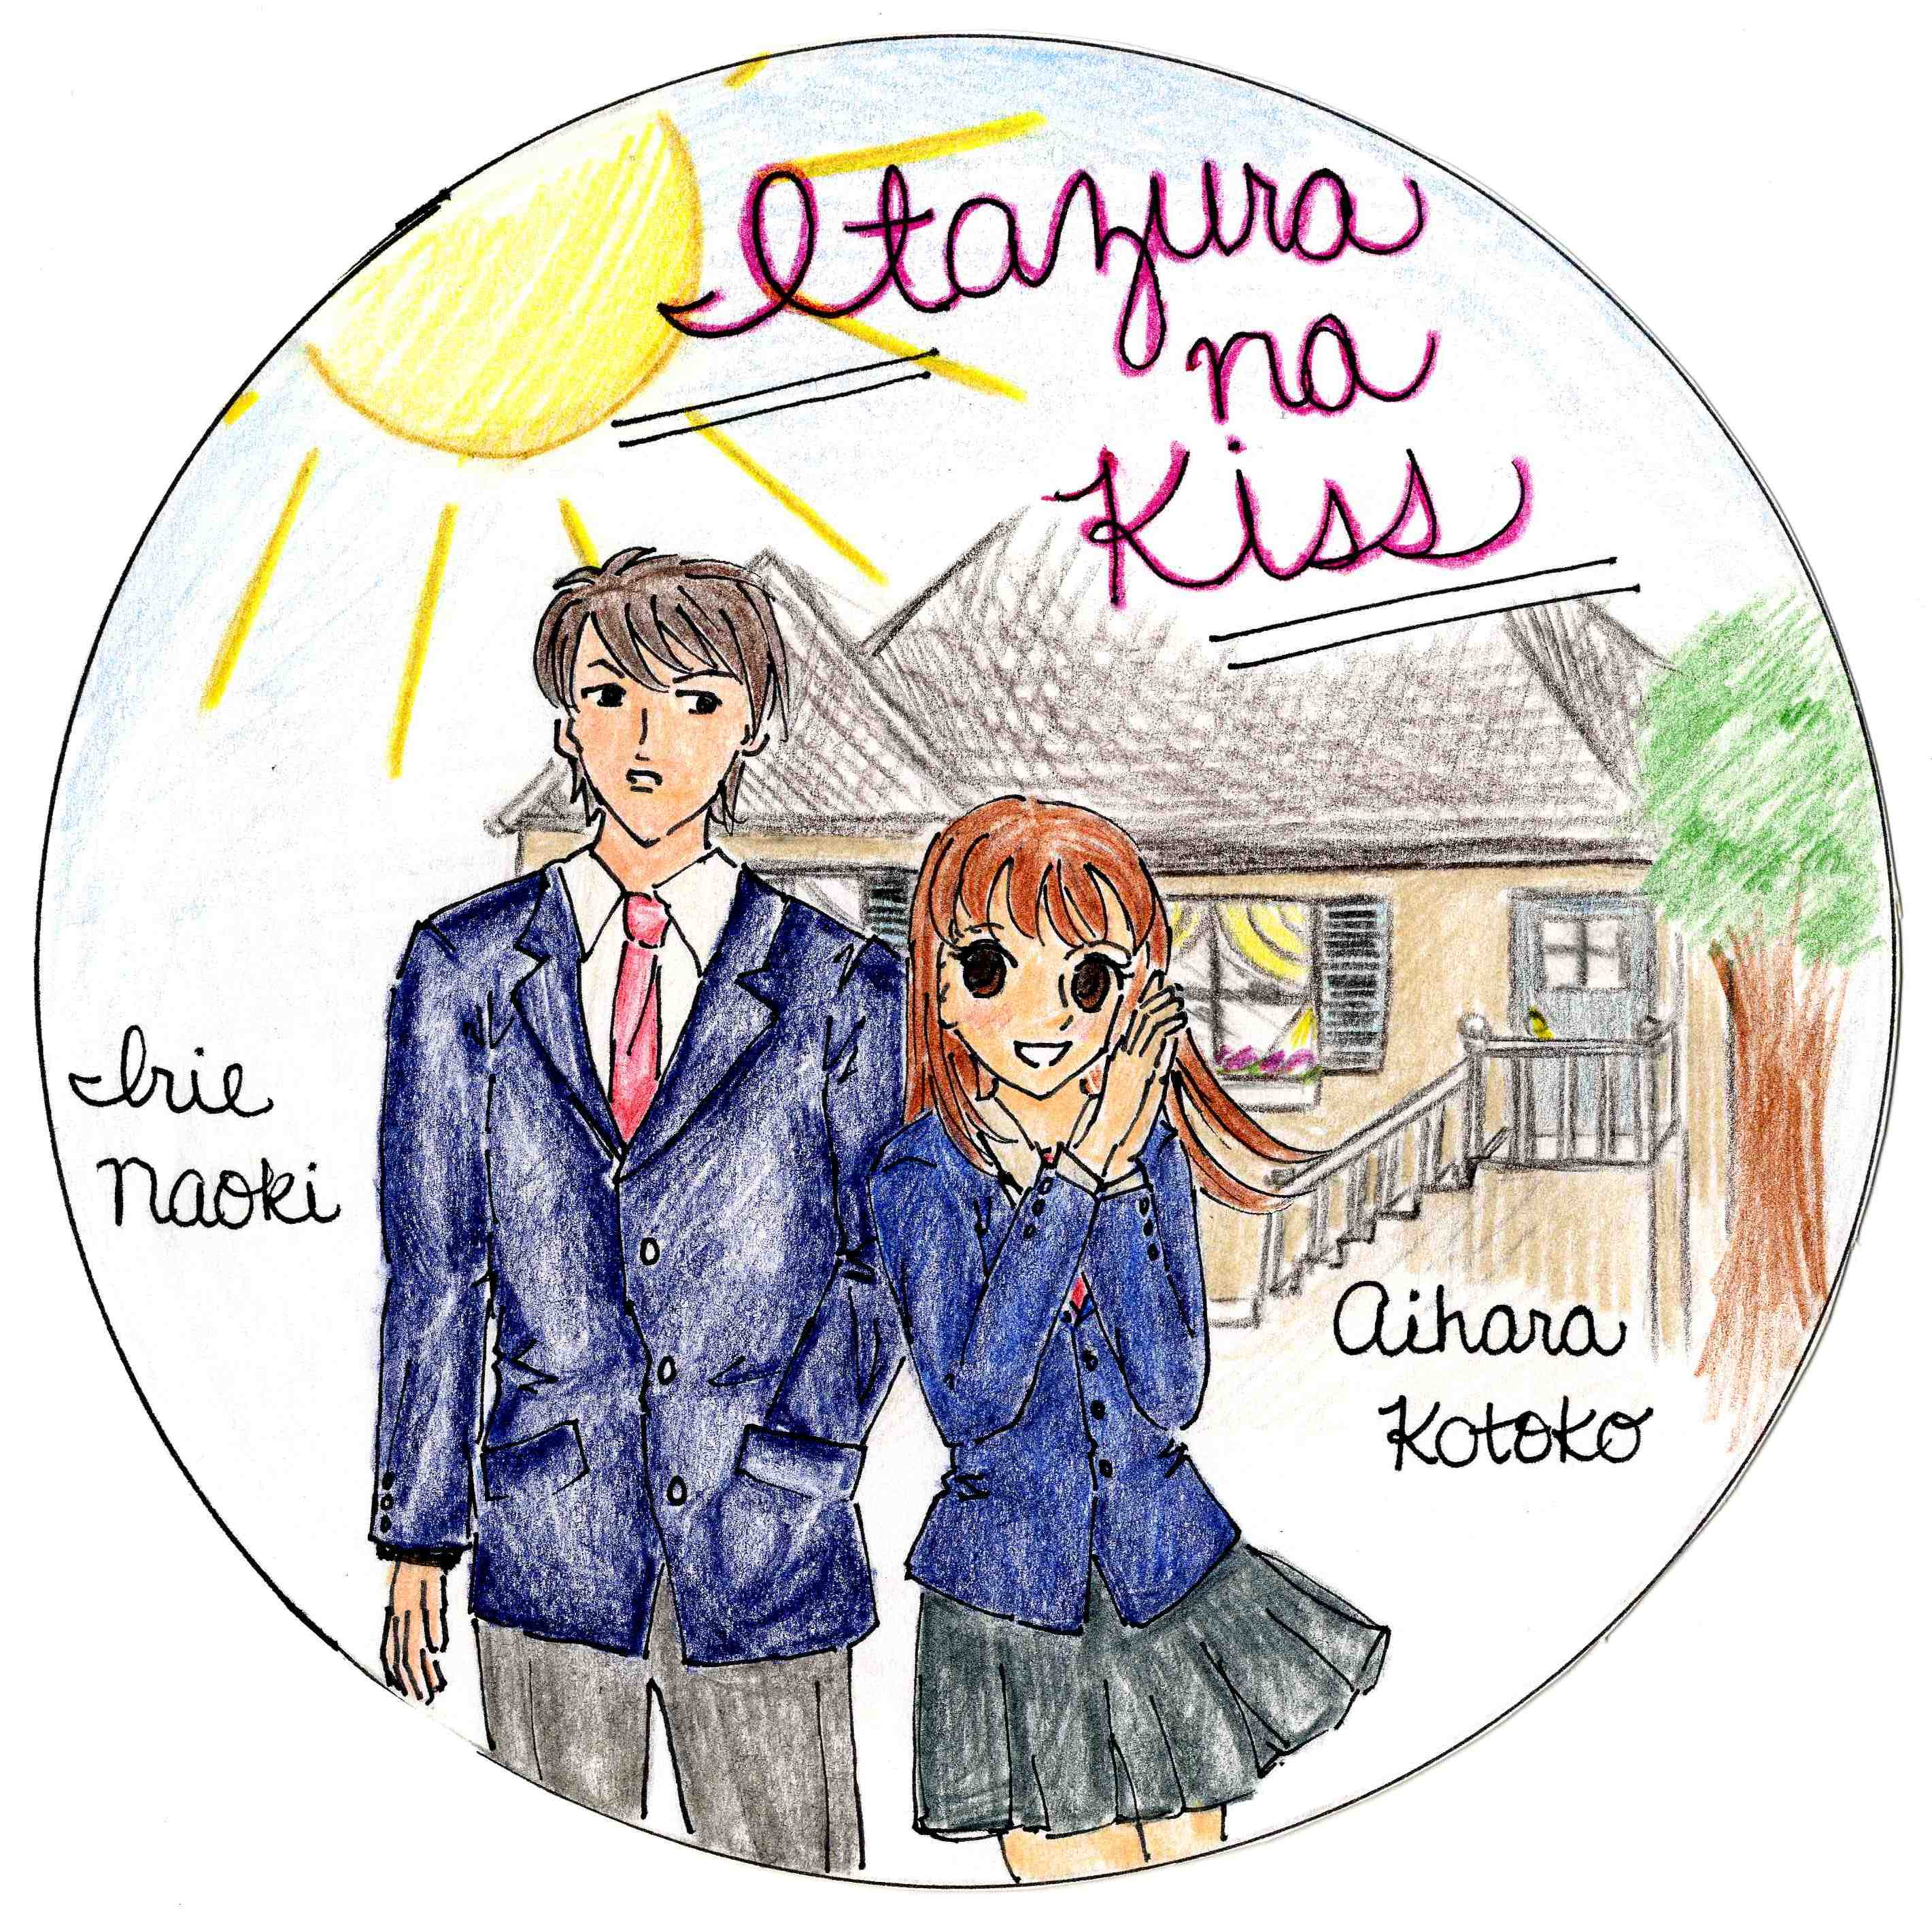 Itazura Na Kiss Ending Song: Itazura Na Kiss, Manga Contest Entry